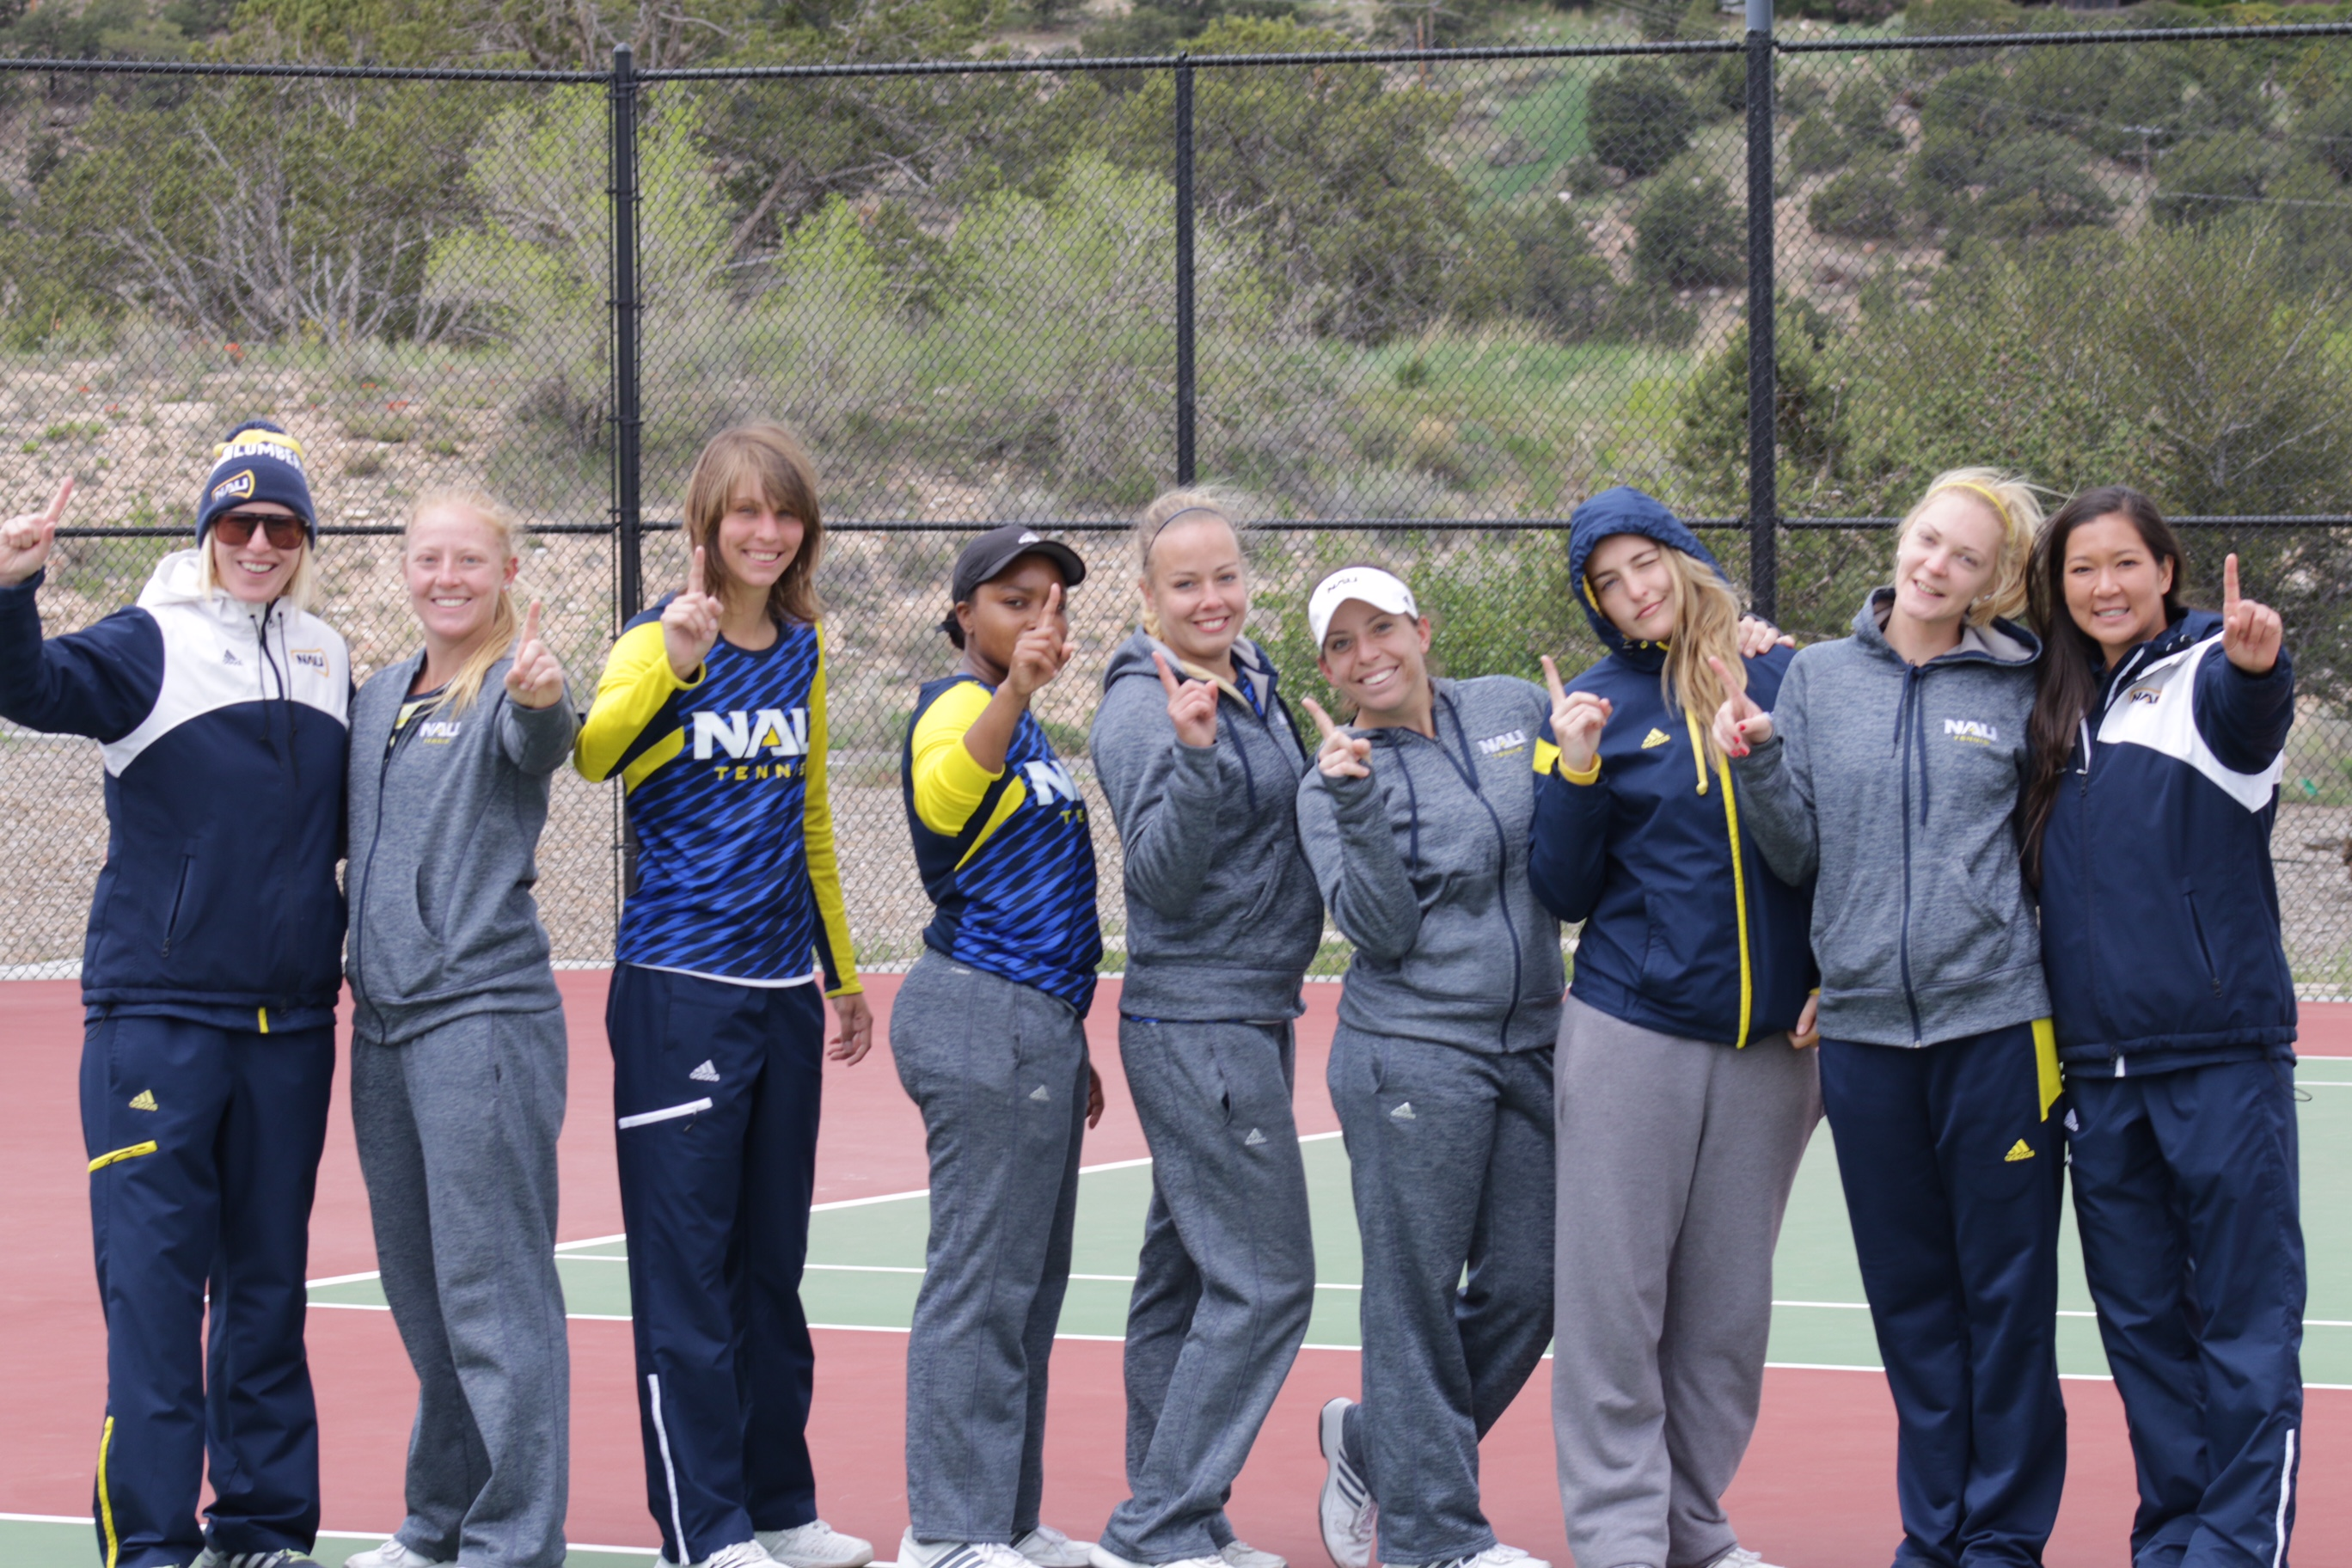 Women's tennis members on the court